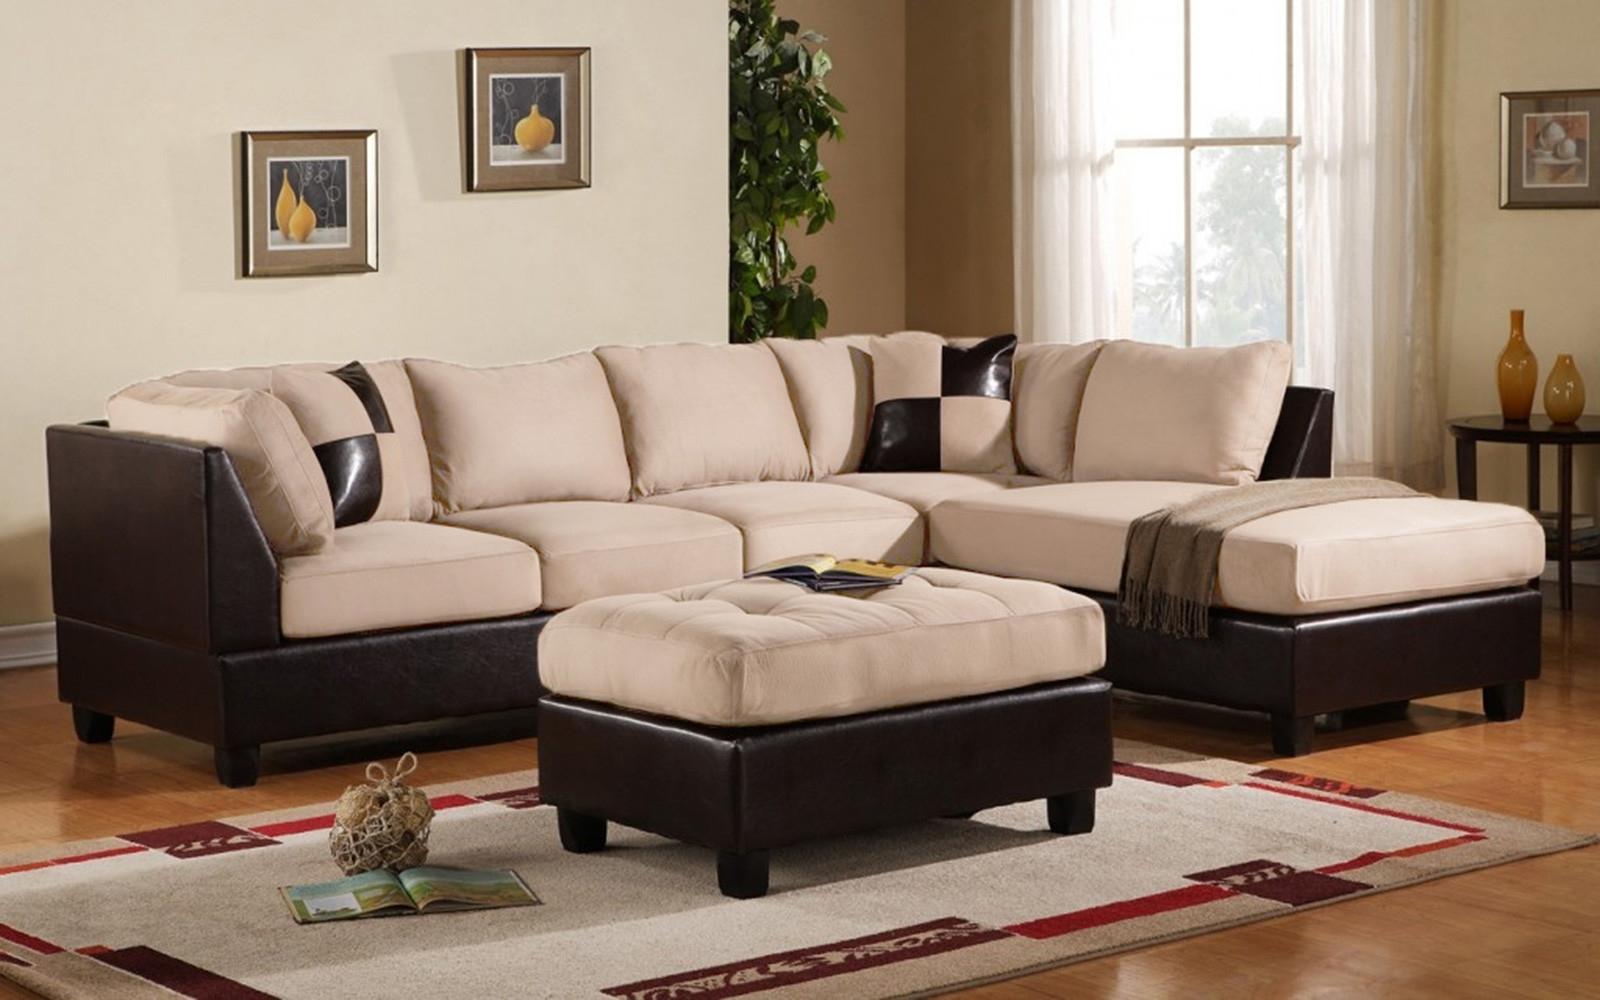 Best Top 20 of Leather And Suede Sectional Sofas JA07